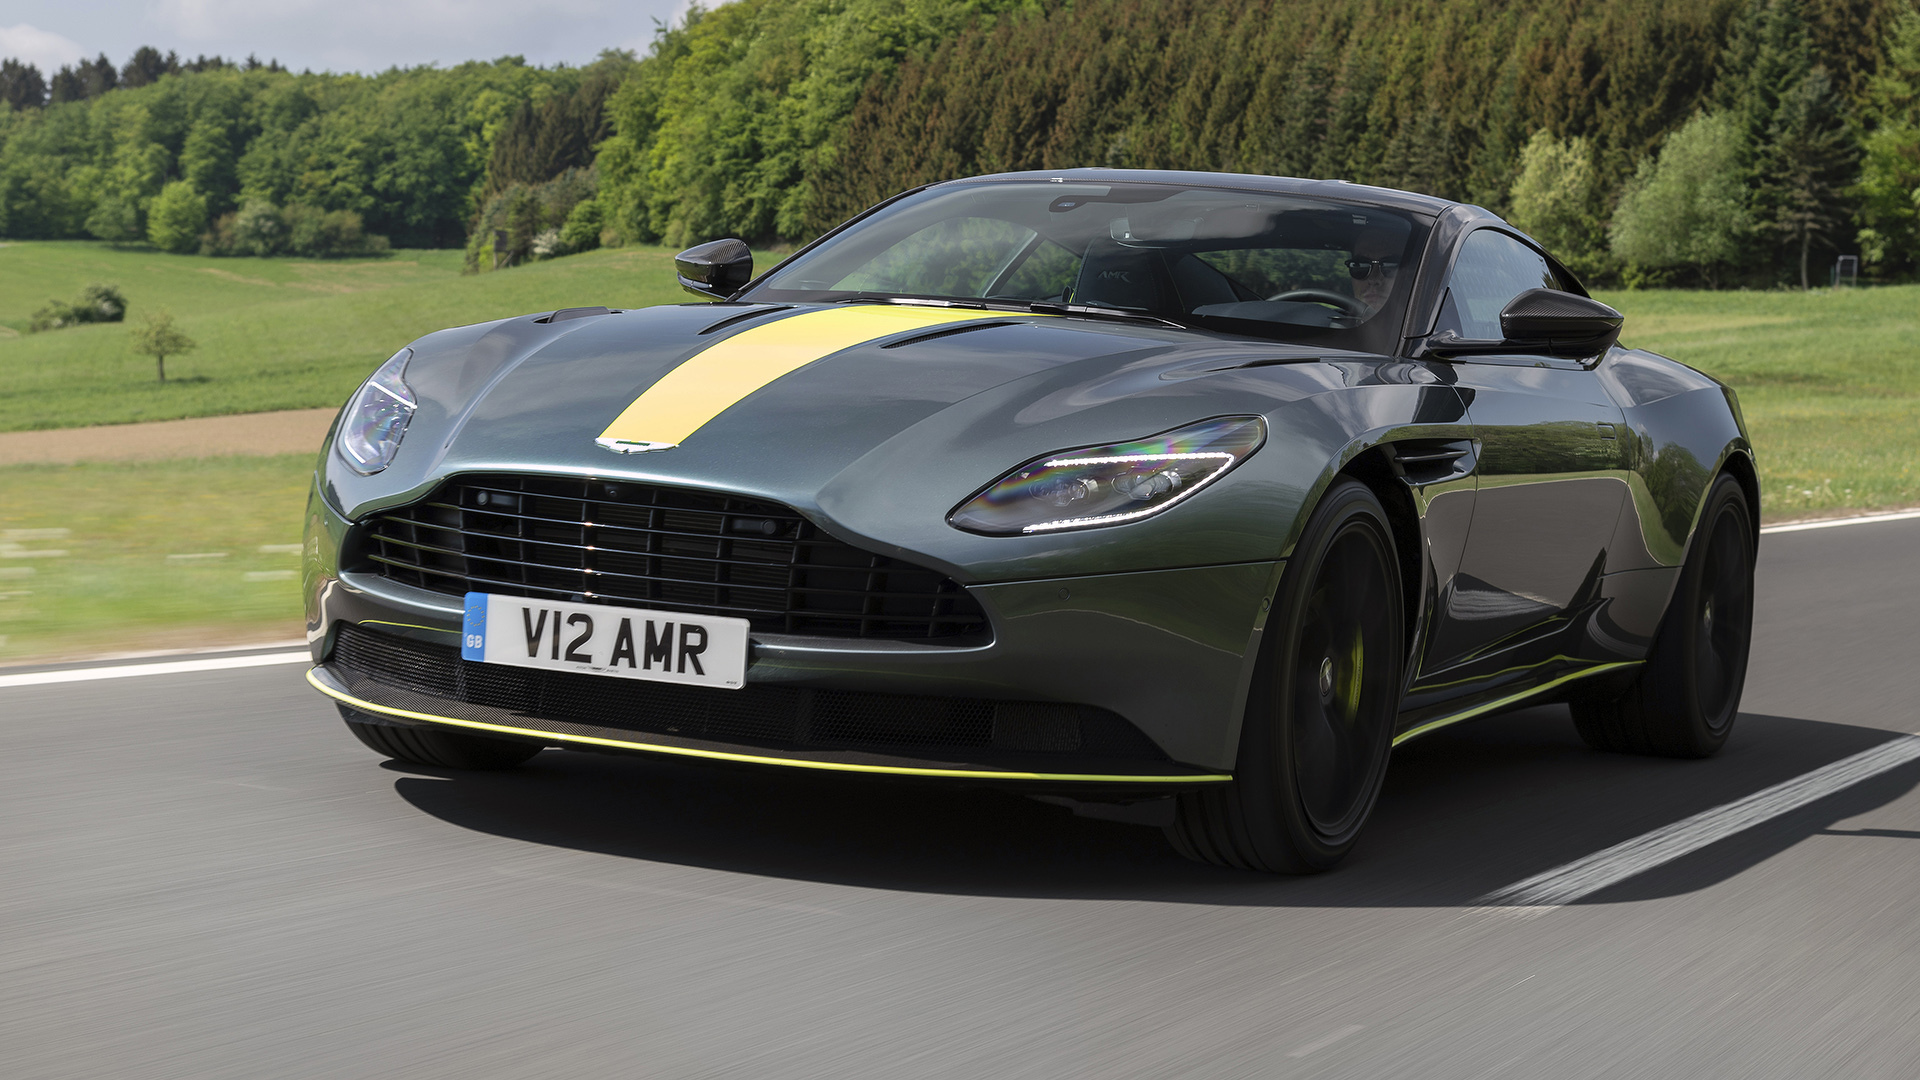 2019 Aston Martin Db11 Amr First Drive Rich Get Richer